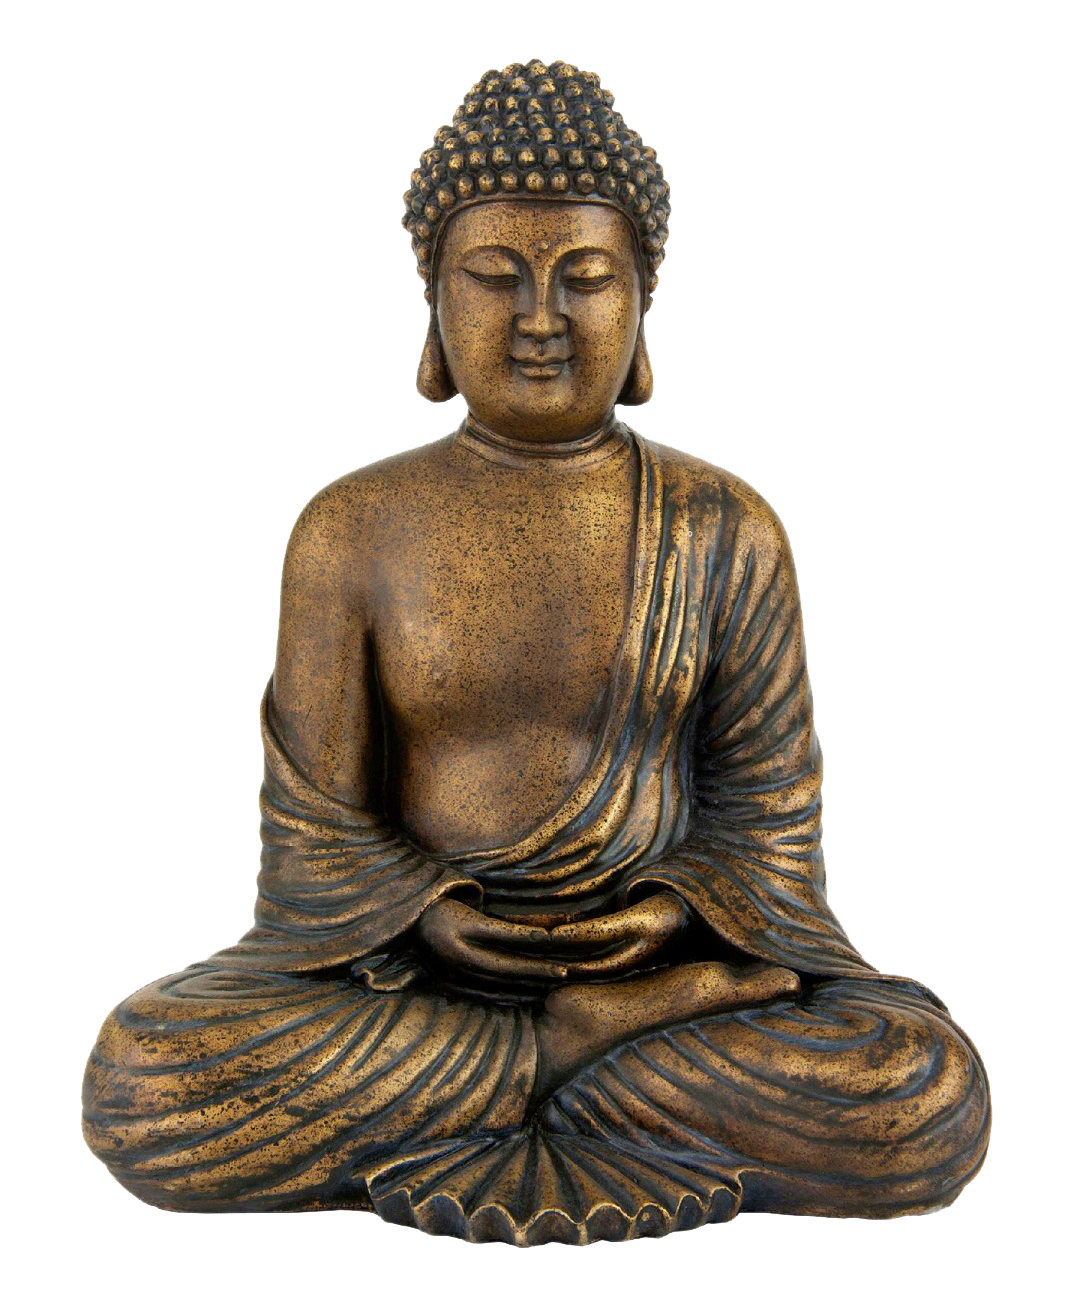 Png images transparent free. Buddha clipart clear jpg royalty free stock